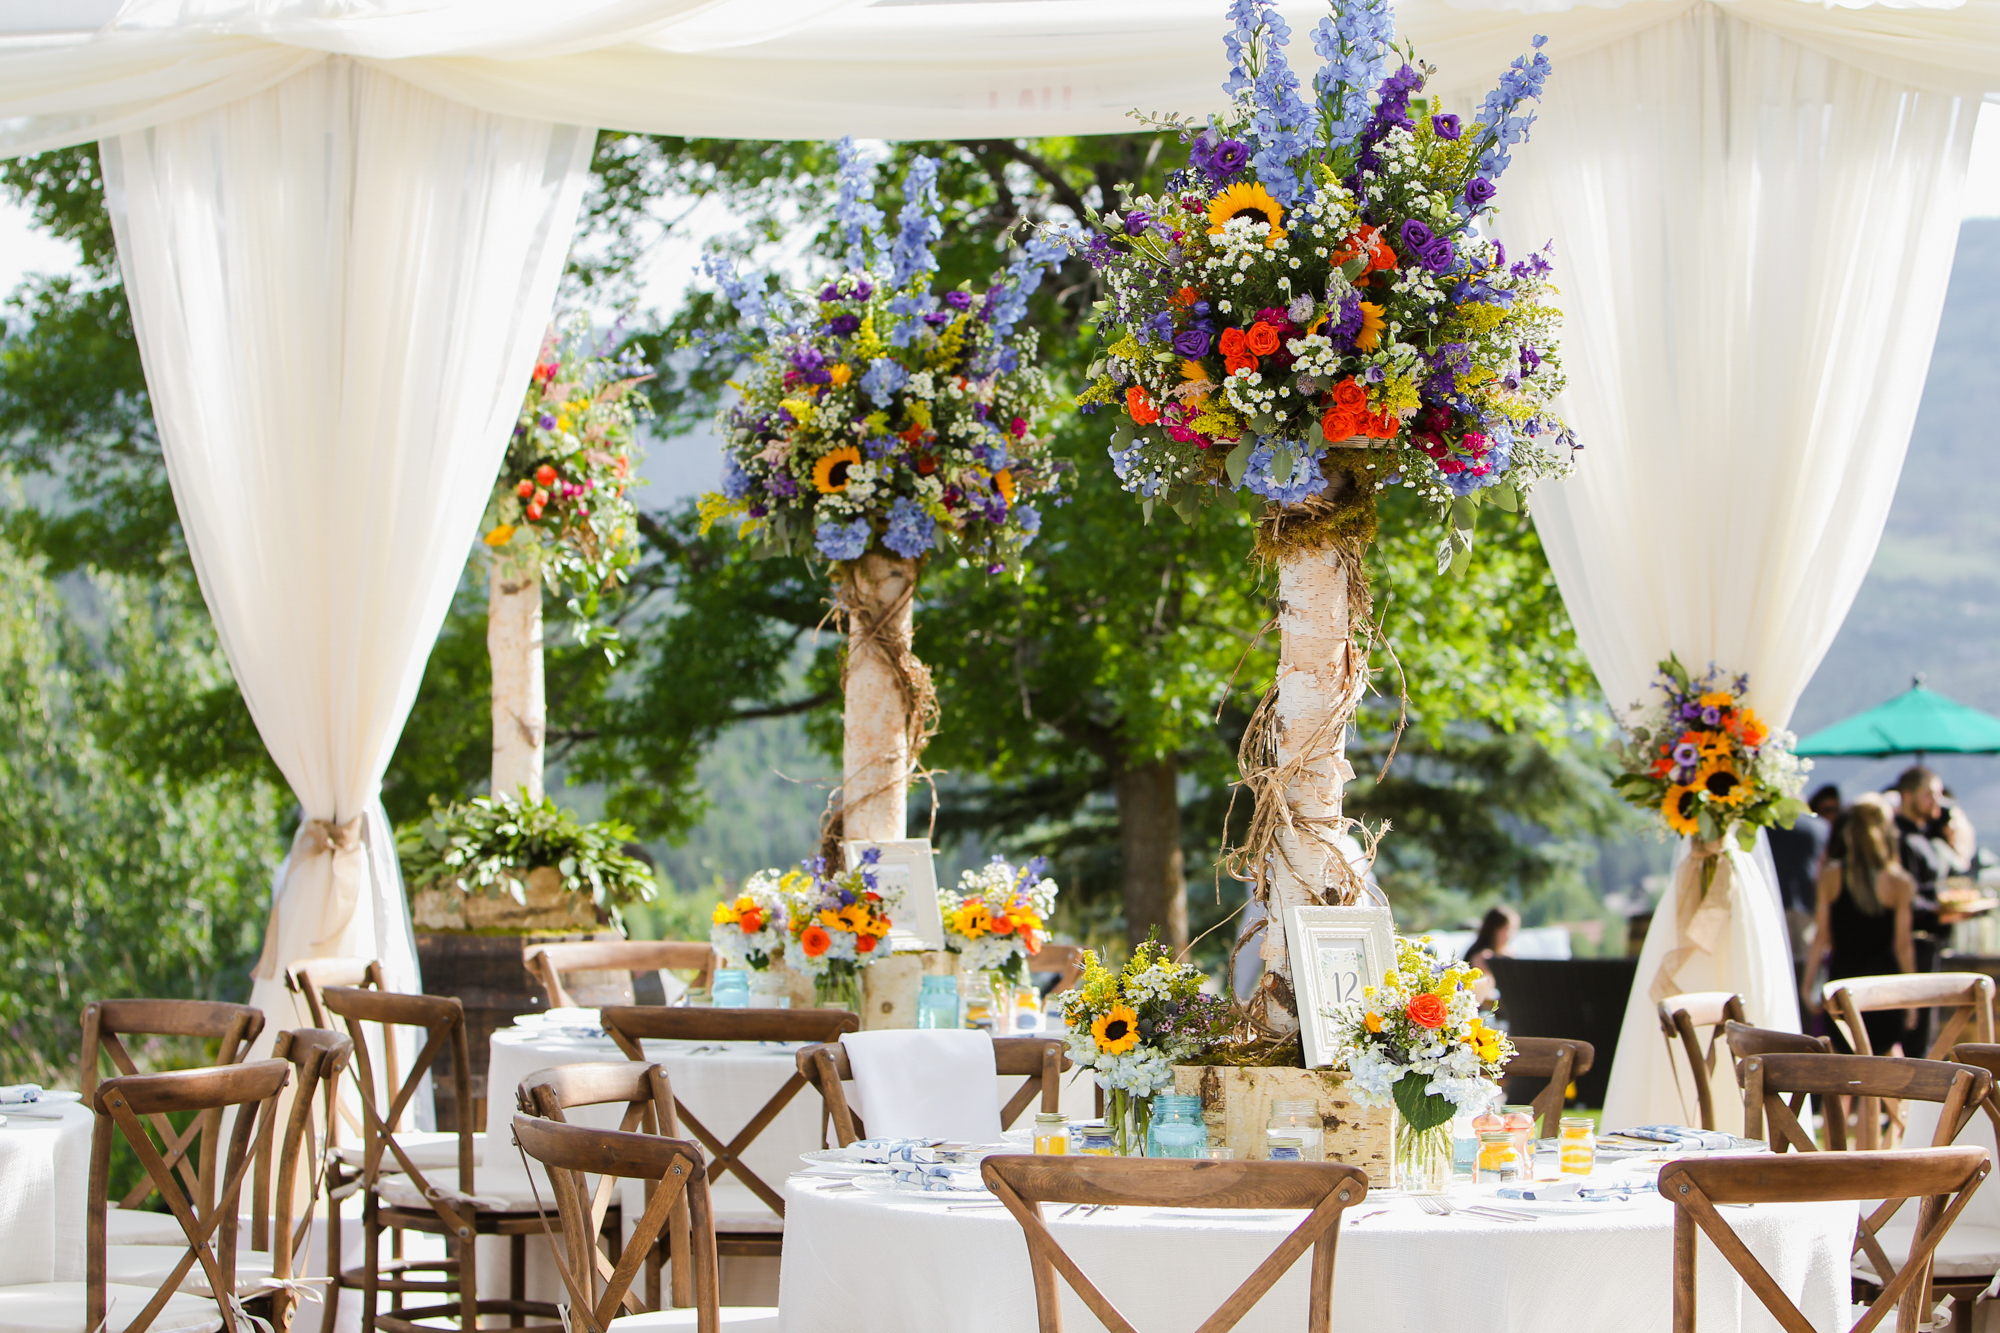 Design Works Denver Floral Centerpieces and Tent Draping